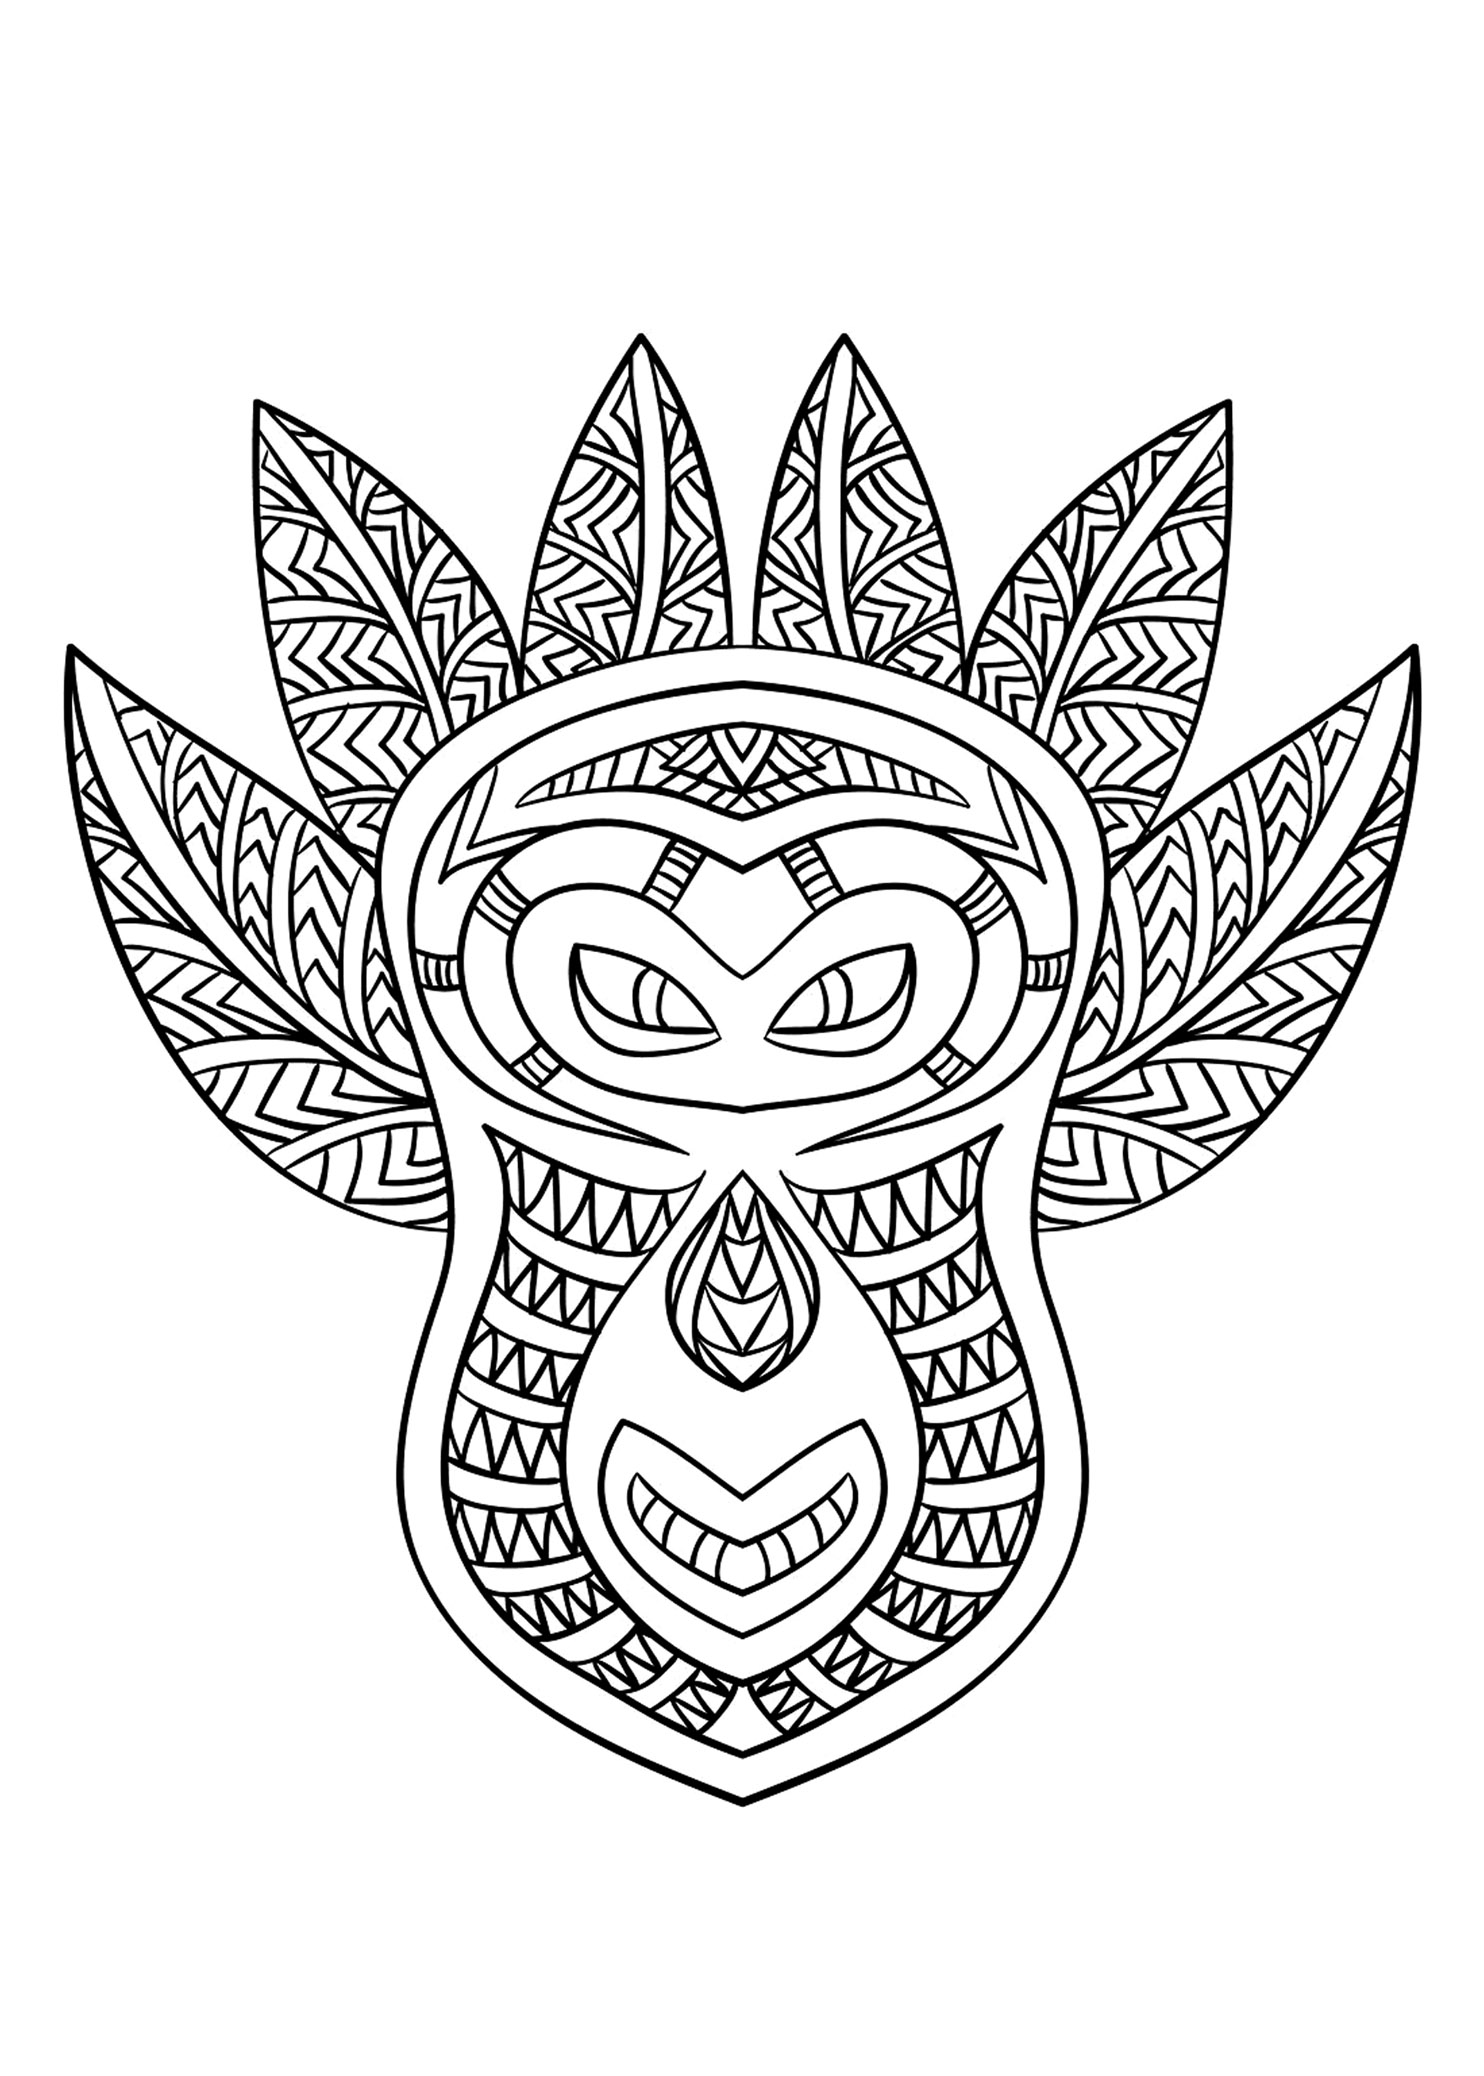 Coloring picture of an African mask - 6